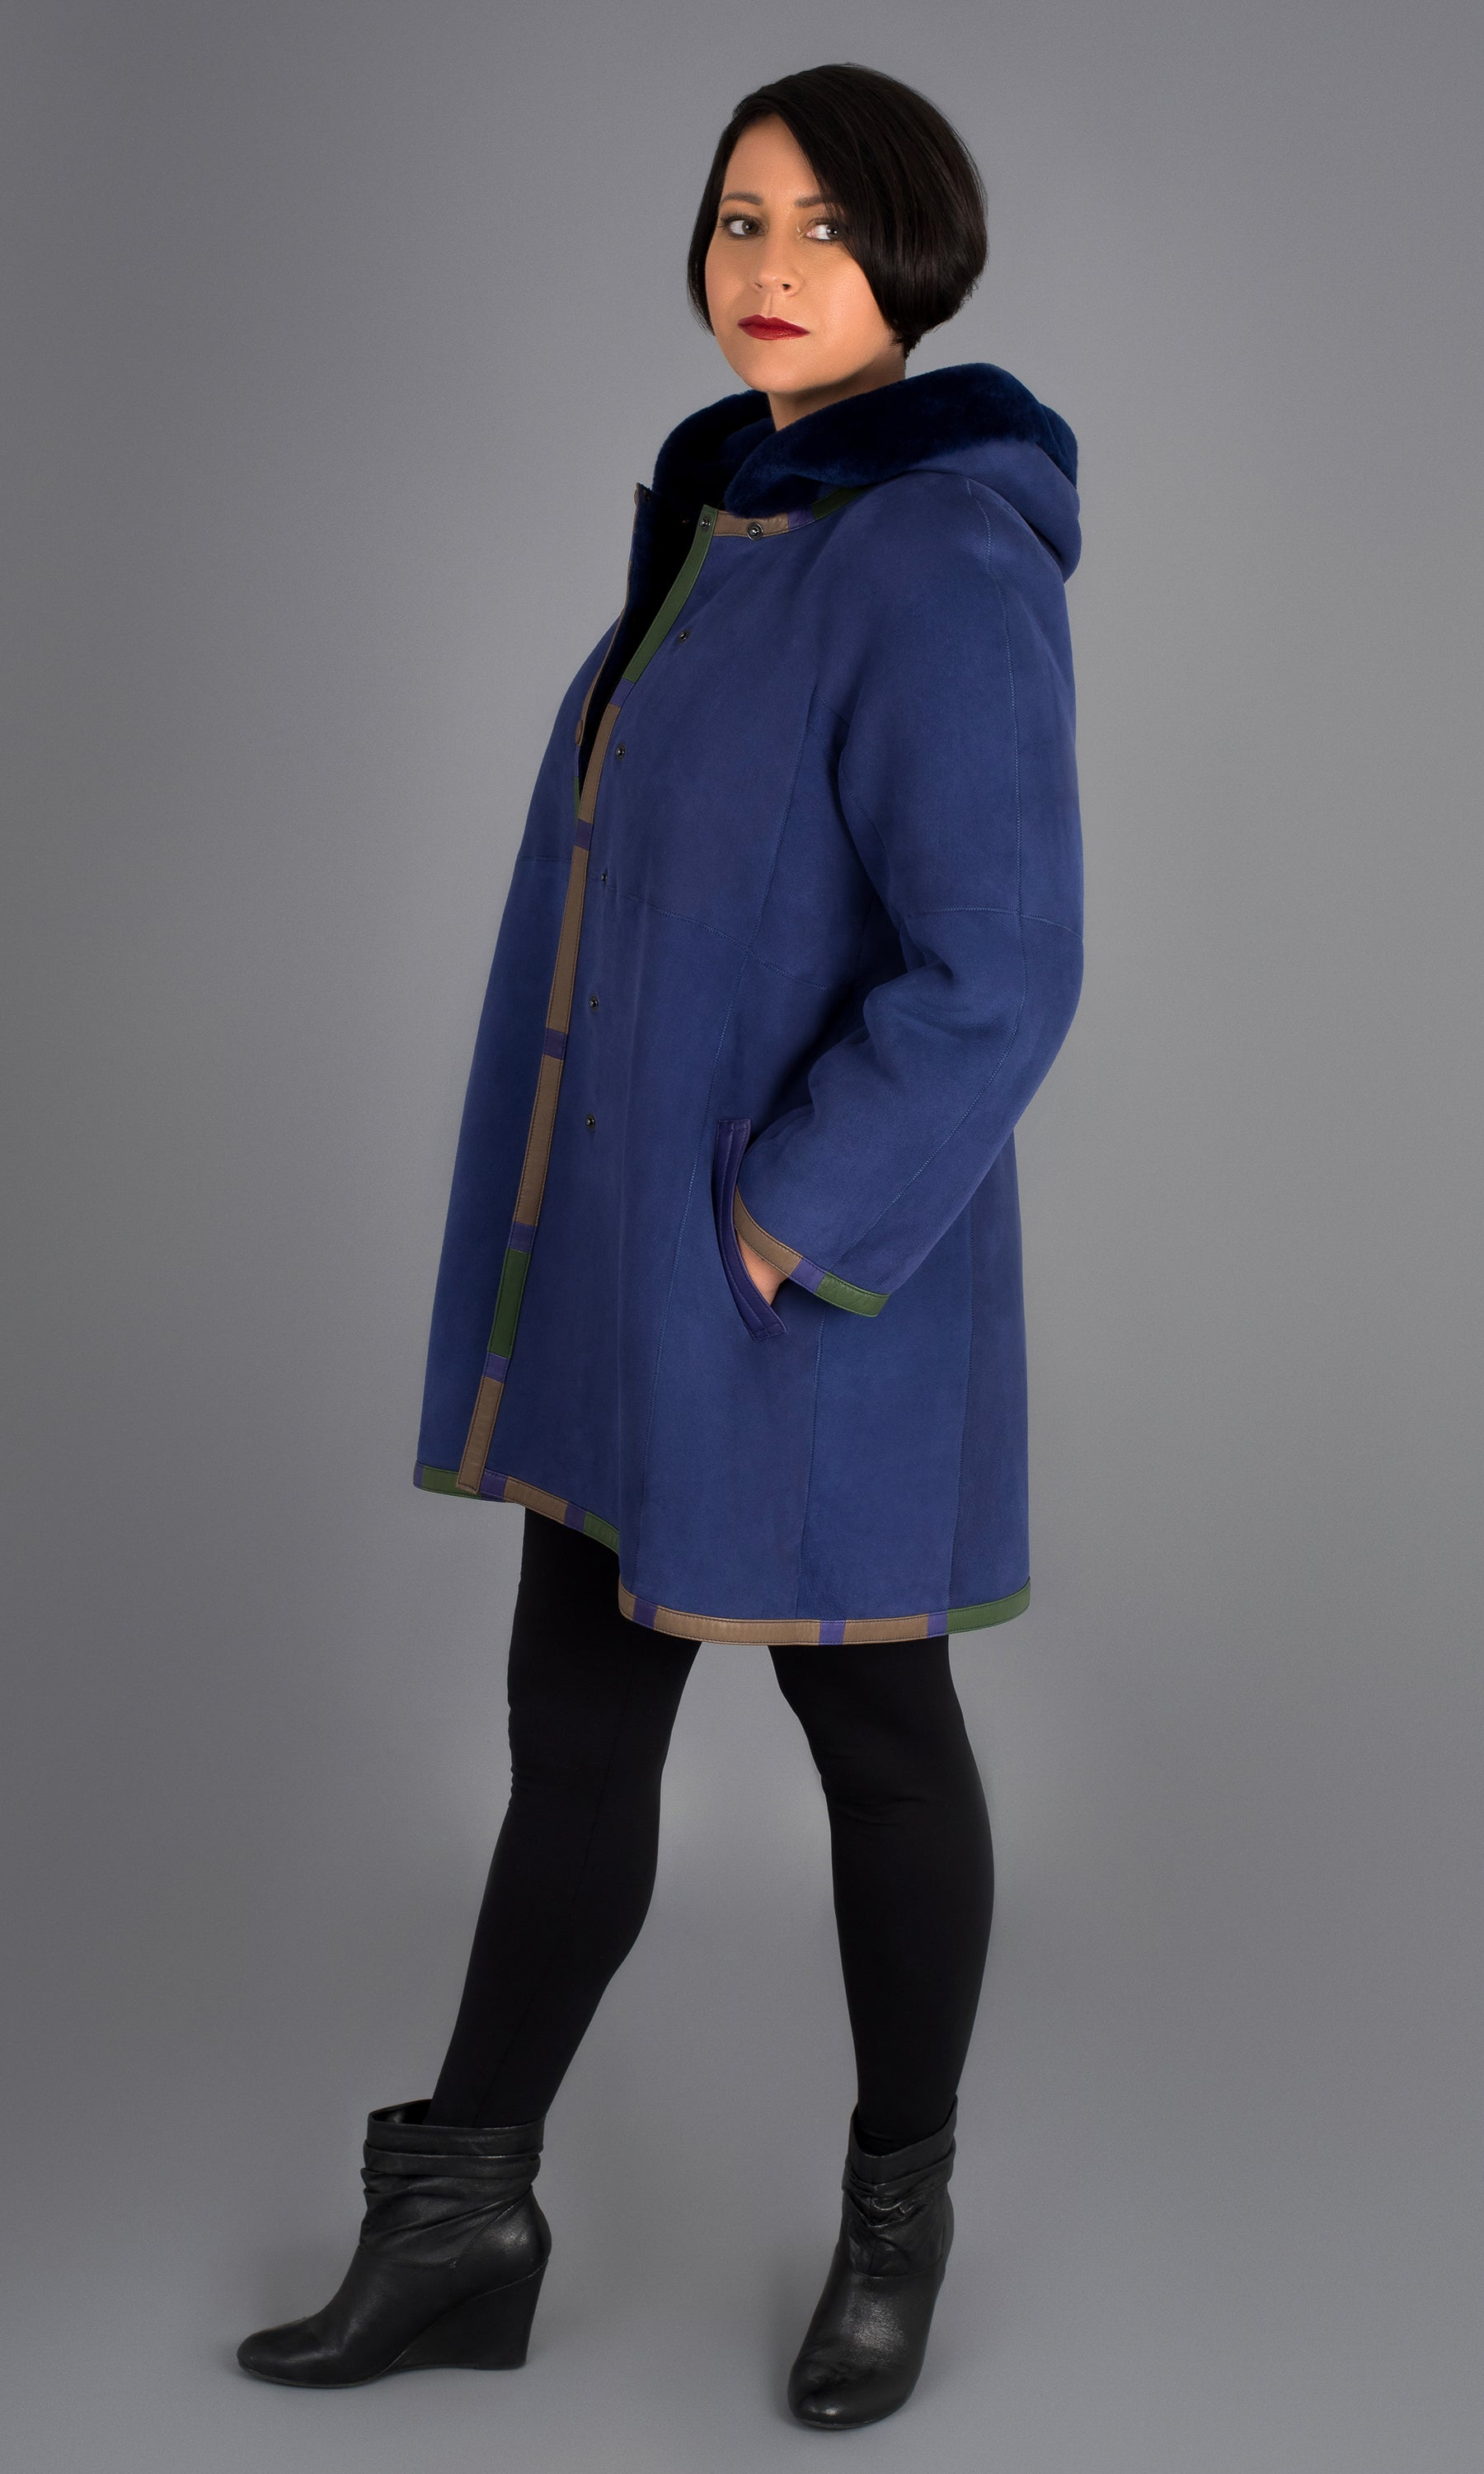 Blue Shearling Swing Coat with hood size medium